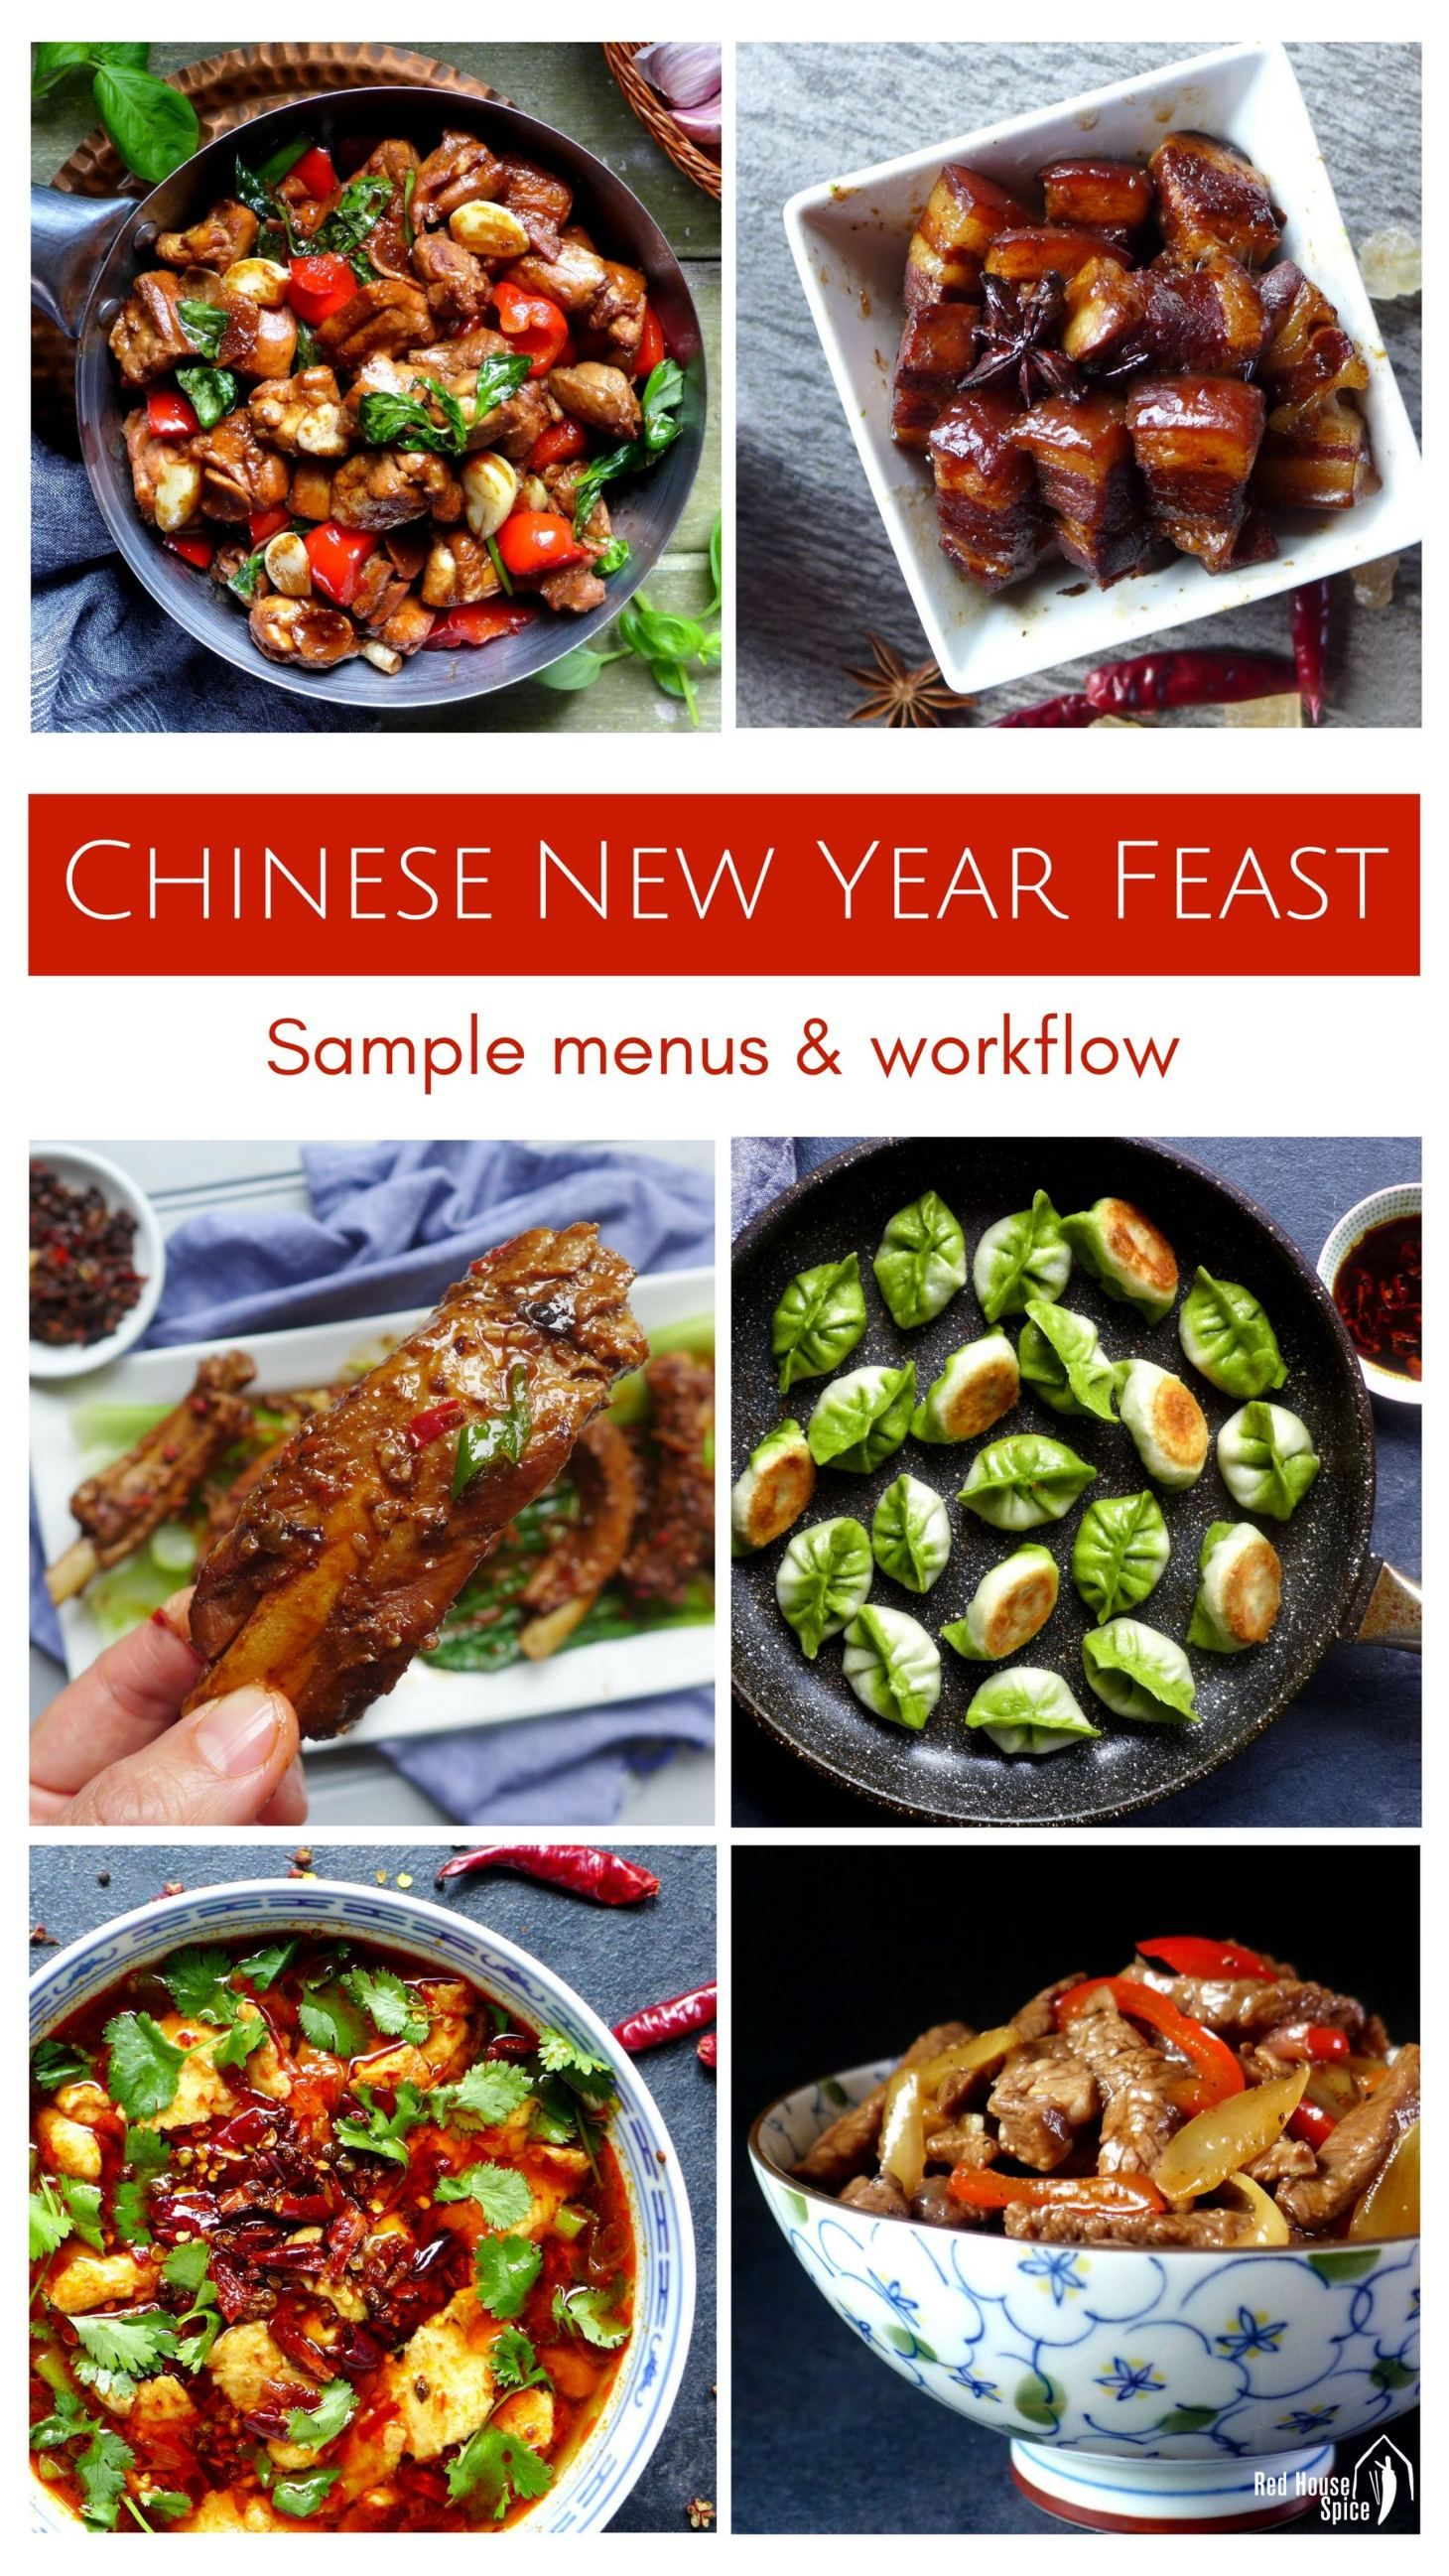 How to prepare a chinese new year feast sample menus